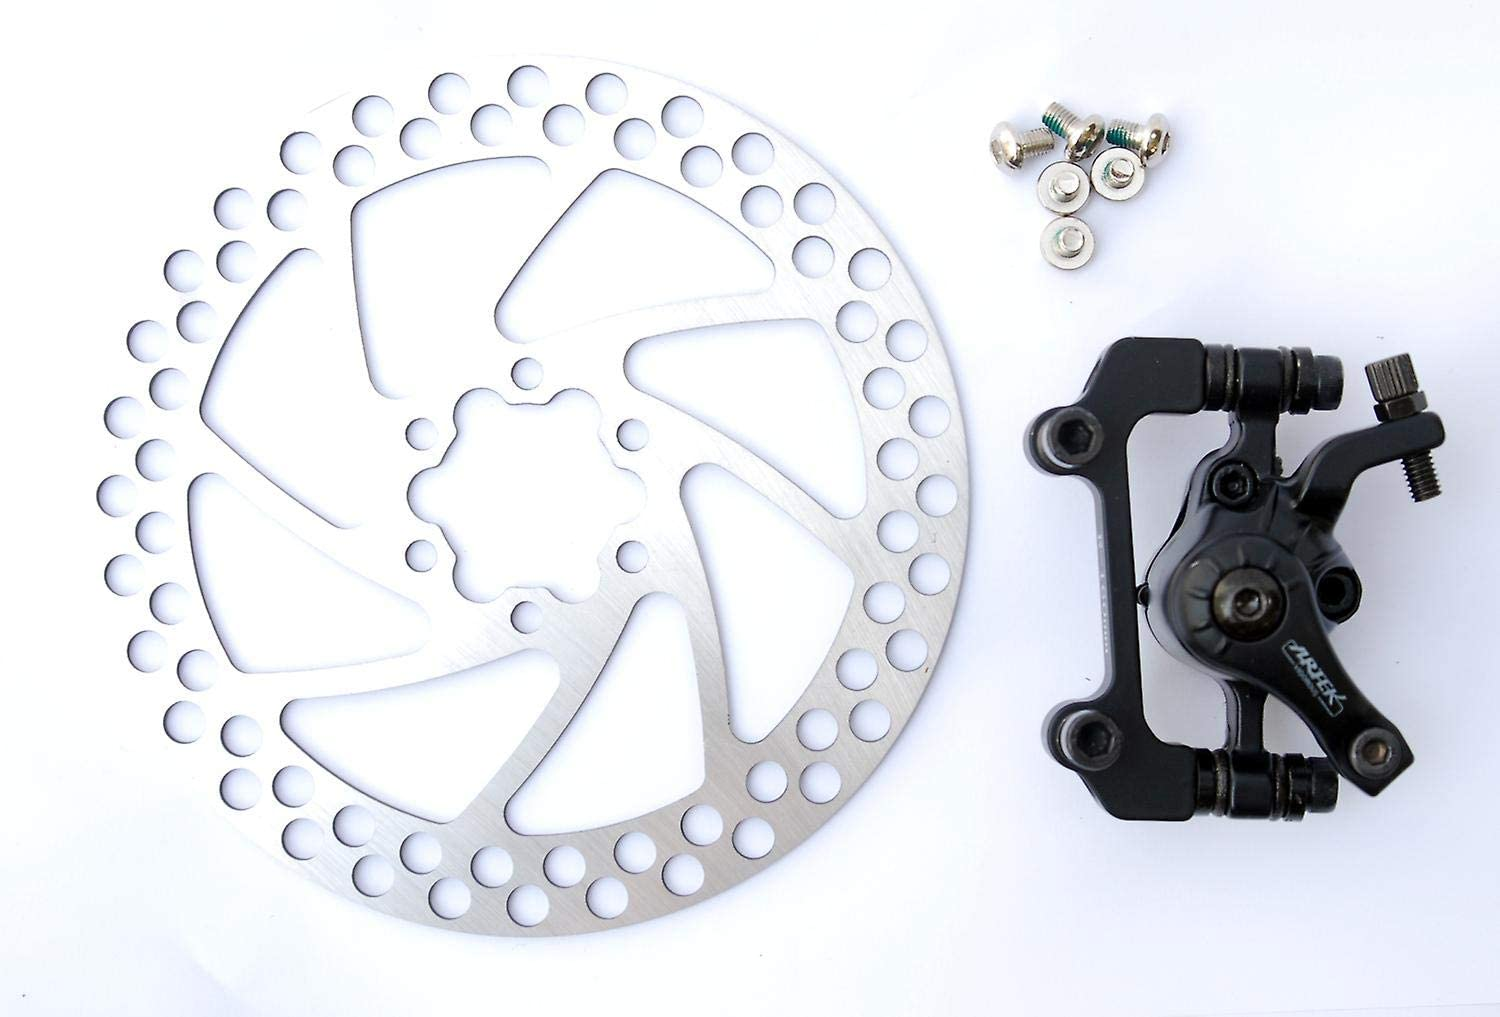 Artek Coyote Mountain Bike Mechanical Front Rear Cable Disc Brake Caliper /& Rotor Set 160mm Inc Bolts Upgrade To Your Bike To Disc Brakes